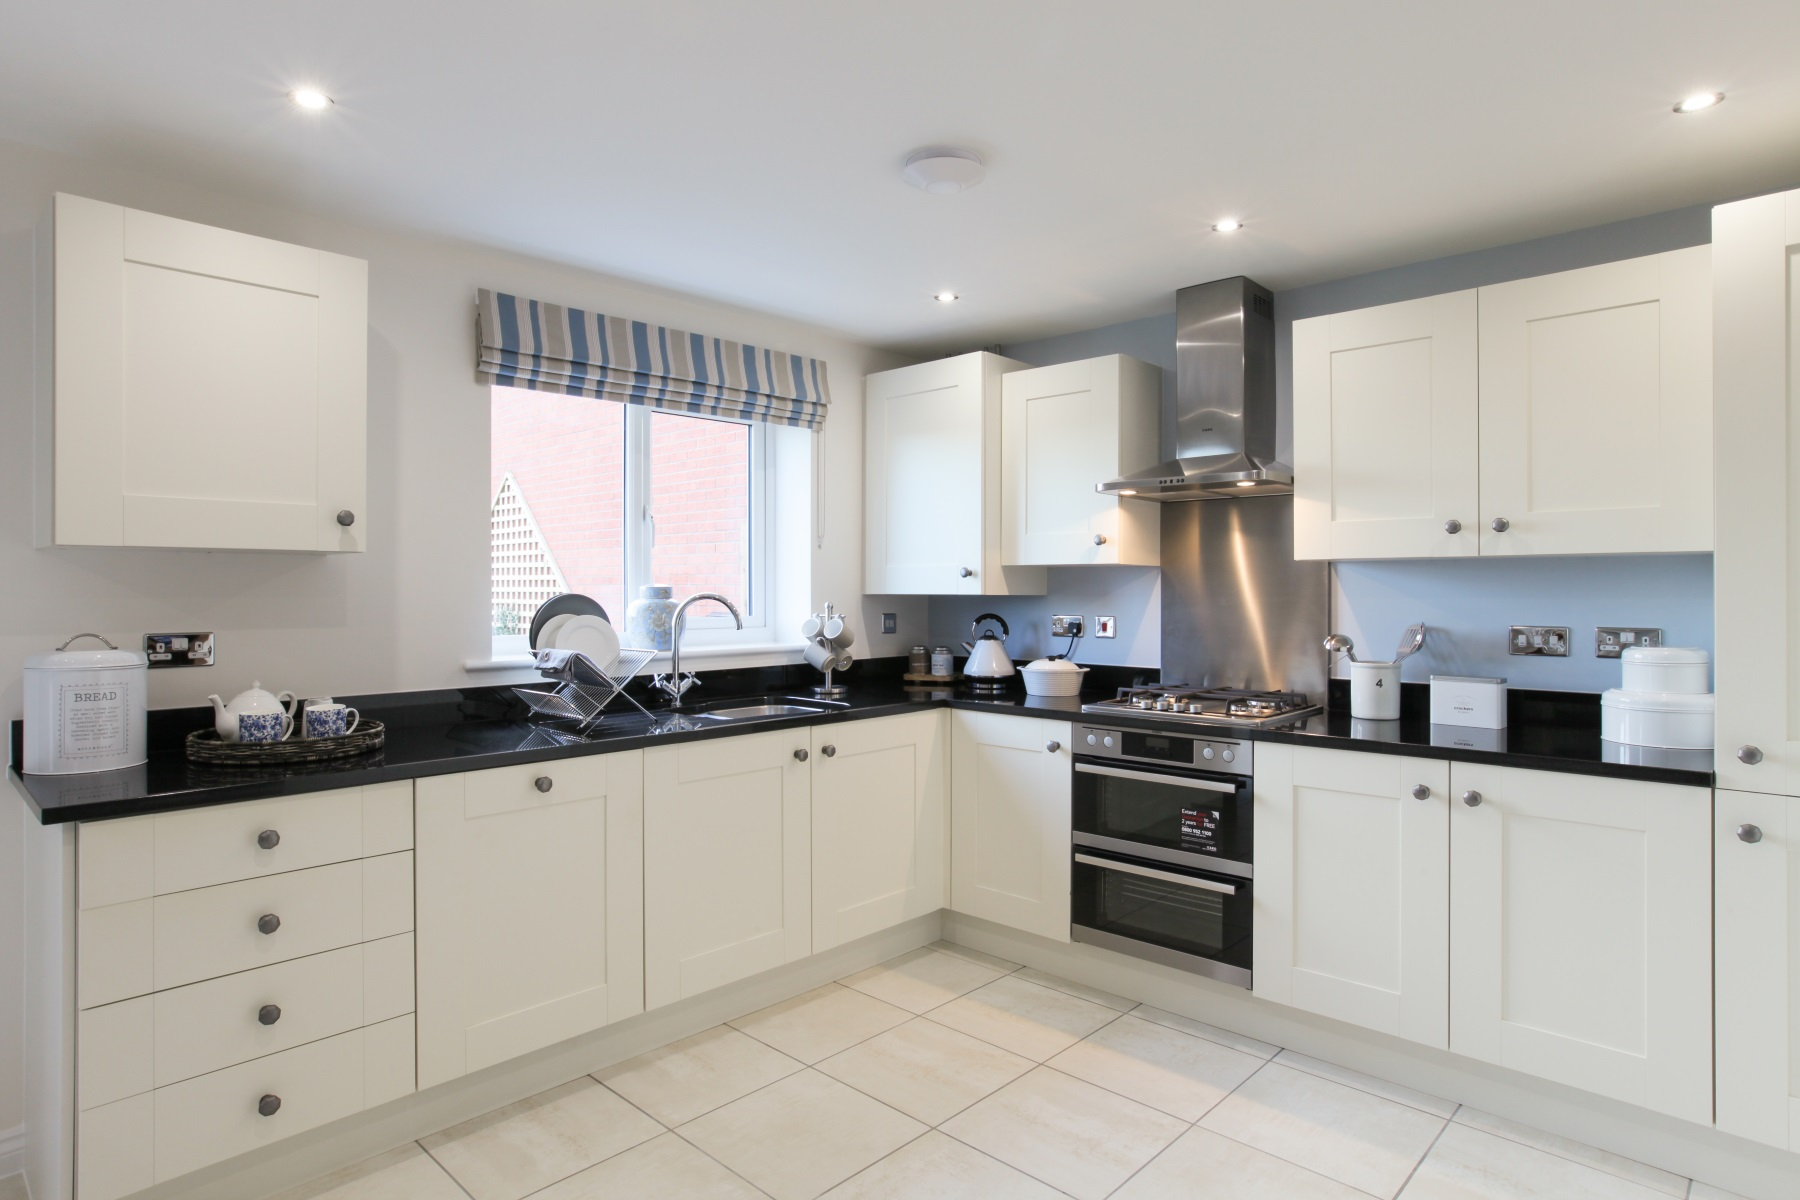 TW Exeter - Sherford - The Redwood example kitchen